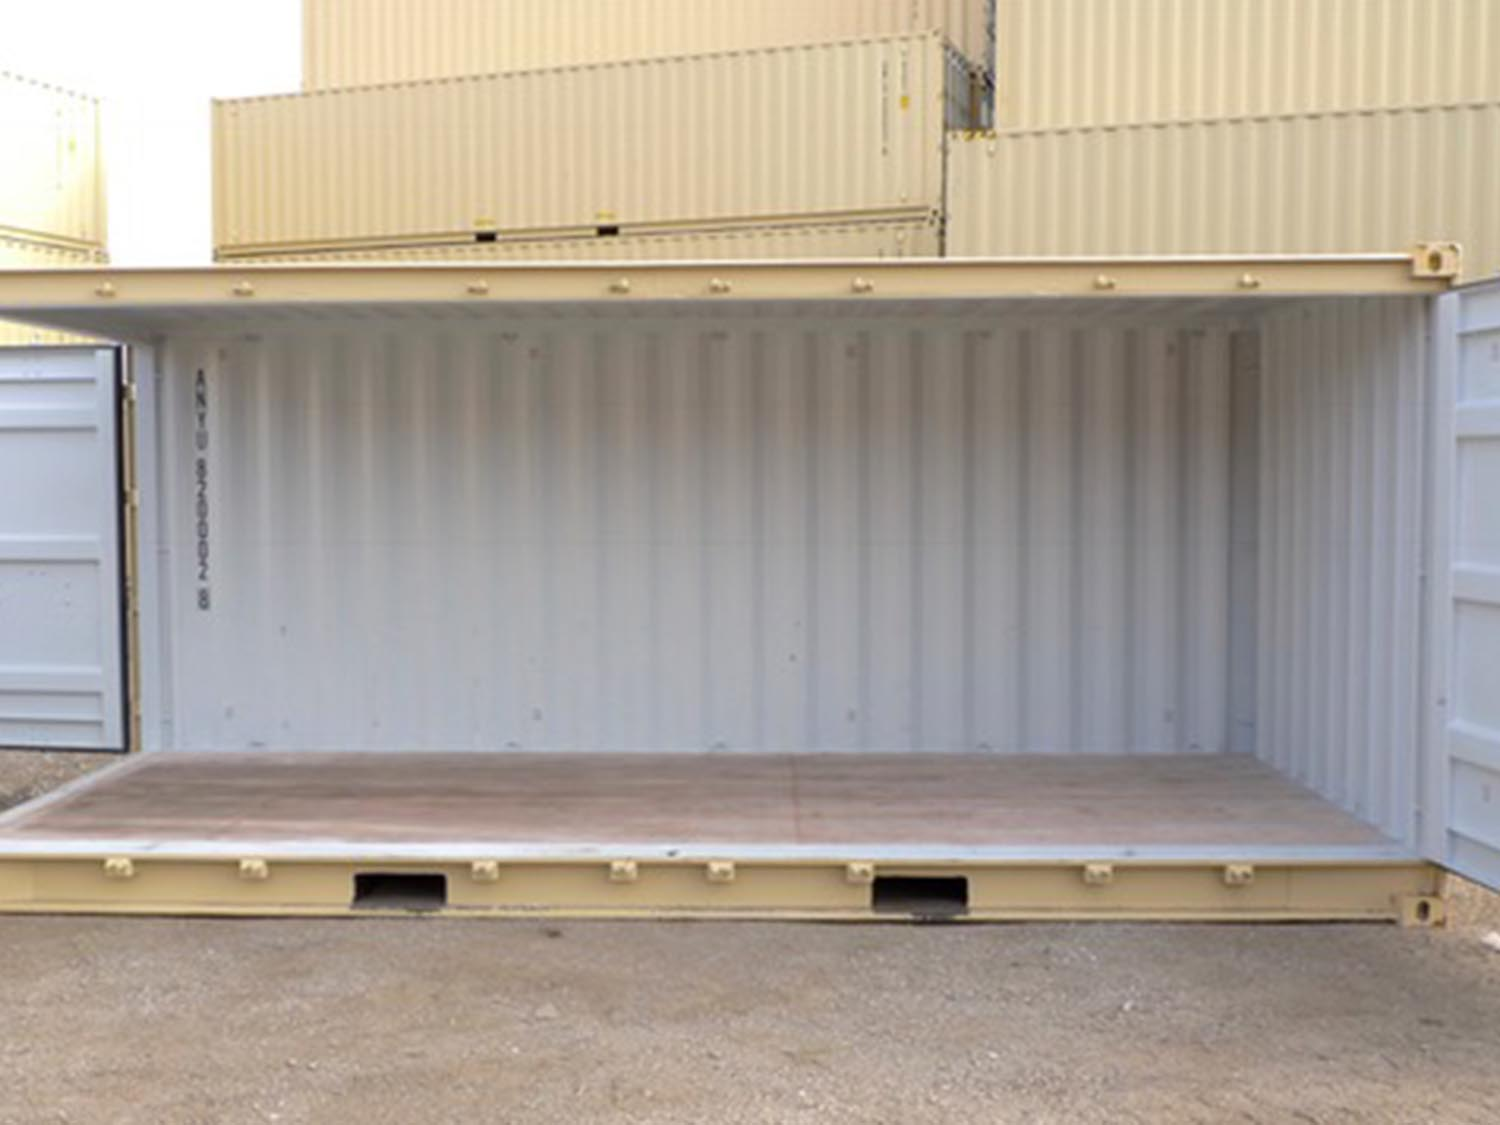 Giant swing doors on a shipping container